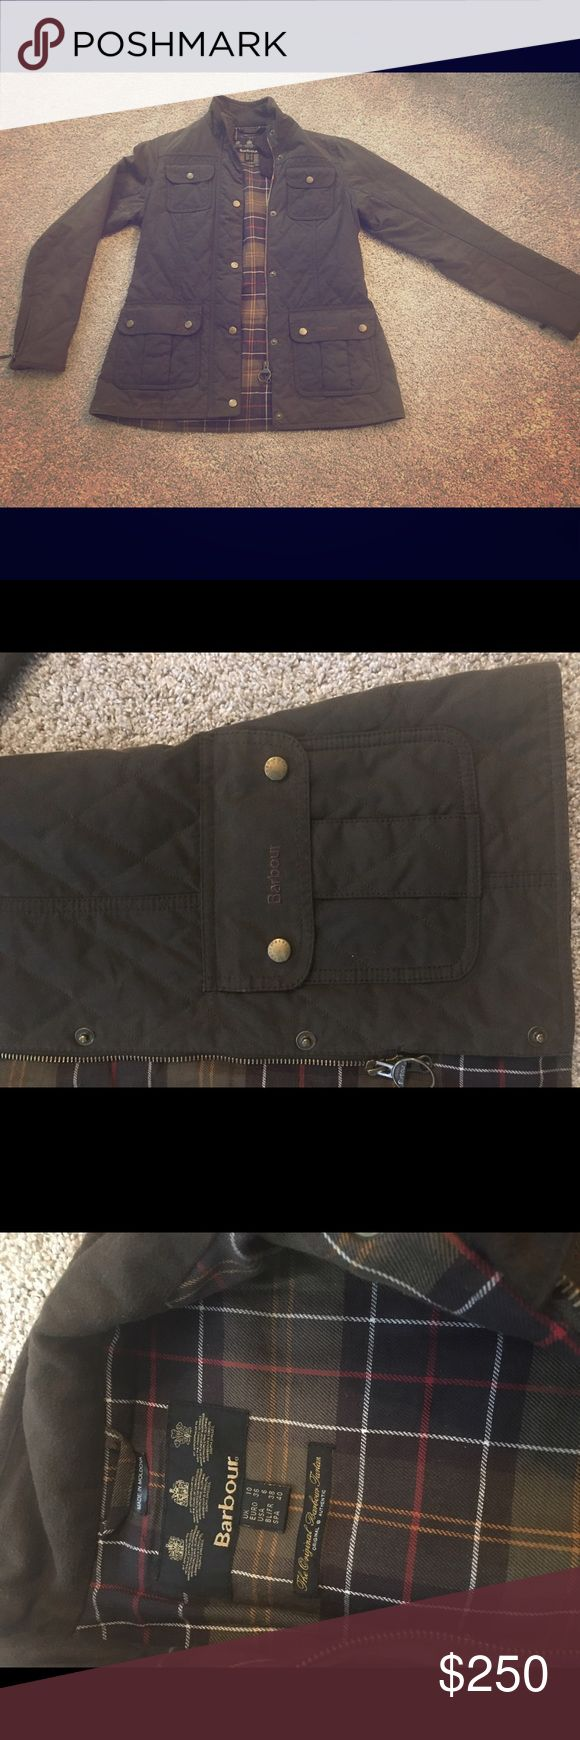 Barbour quilted jacket, army green Great condition! US size 6, very warm! Barbour Jackets & Coats Utility Jackets